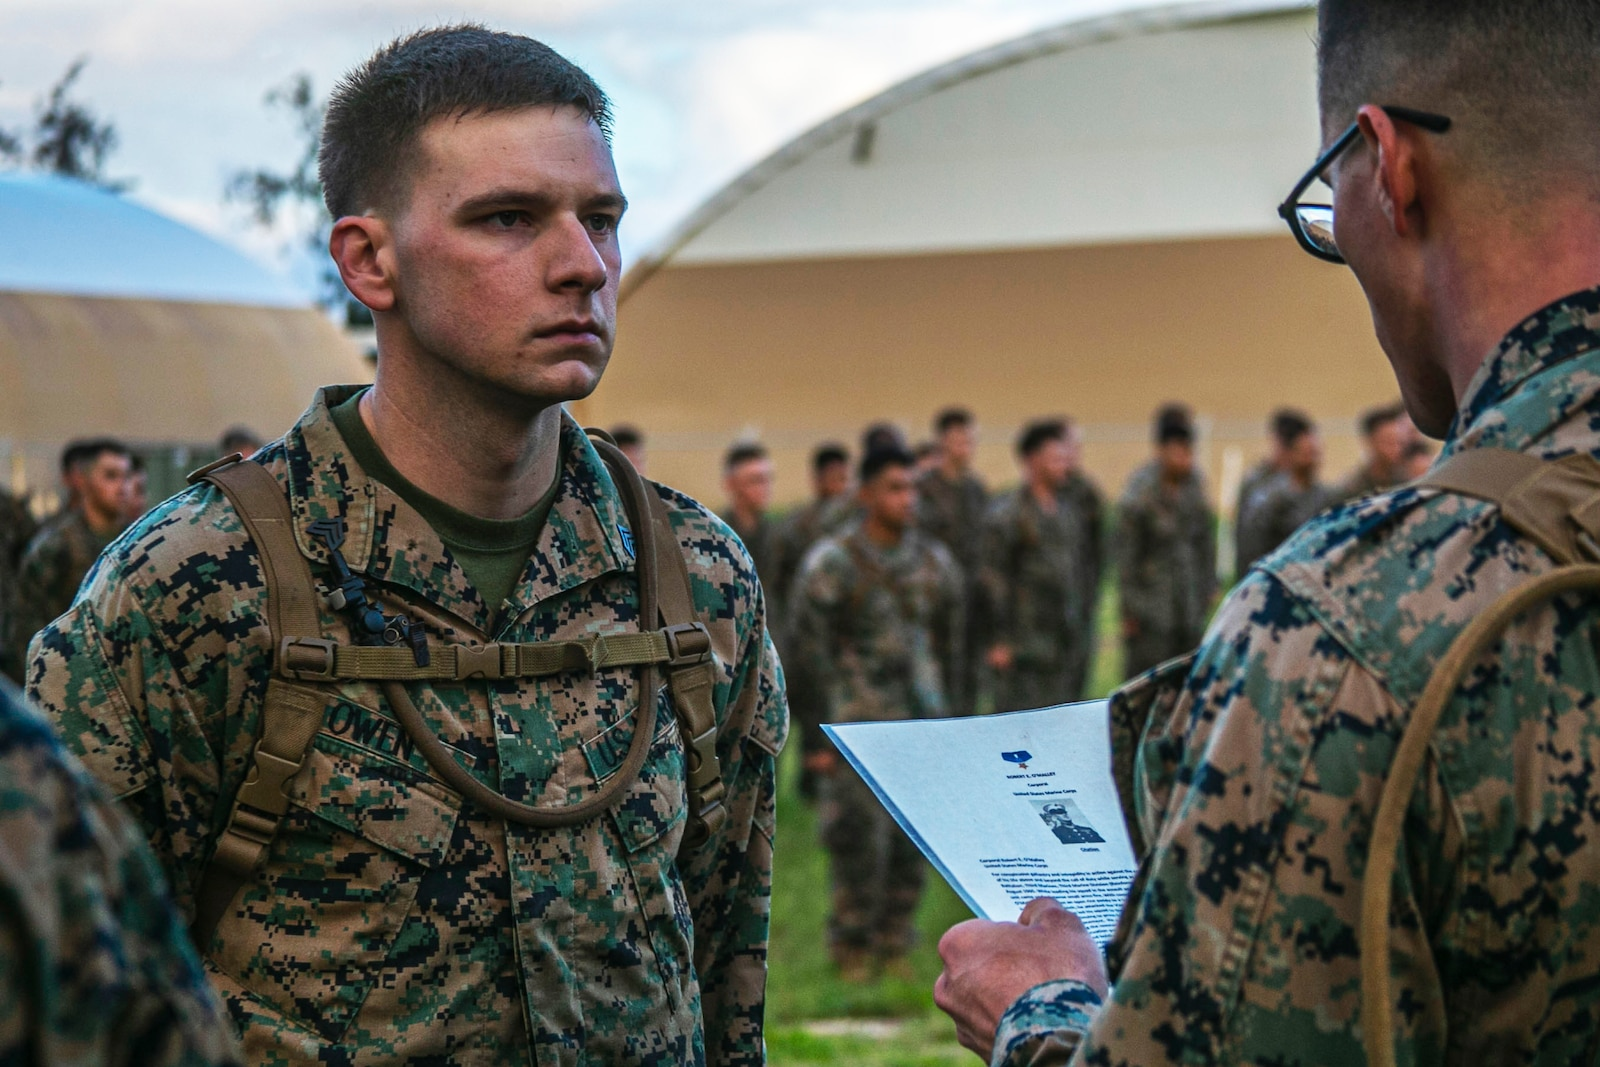 U.S. Marine Corps Sgt. Anthony Owen, squad leader, India Company, 3rd Battalion, 3rd Marine Regiment, is awarded the citation of Cpl. Robert E. O'Malley for outstanding service on Marine Corps Base Hawaii, Feb. 10, 2020. Cpl. O'Malley was with the unit when his actions in Vietnam during Operation Starlite were awarded with the Medal of Honor. (U.S. Marine Corps photo by Lance Cpl. Jacob Wilson)